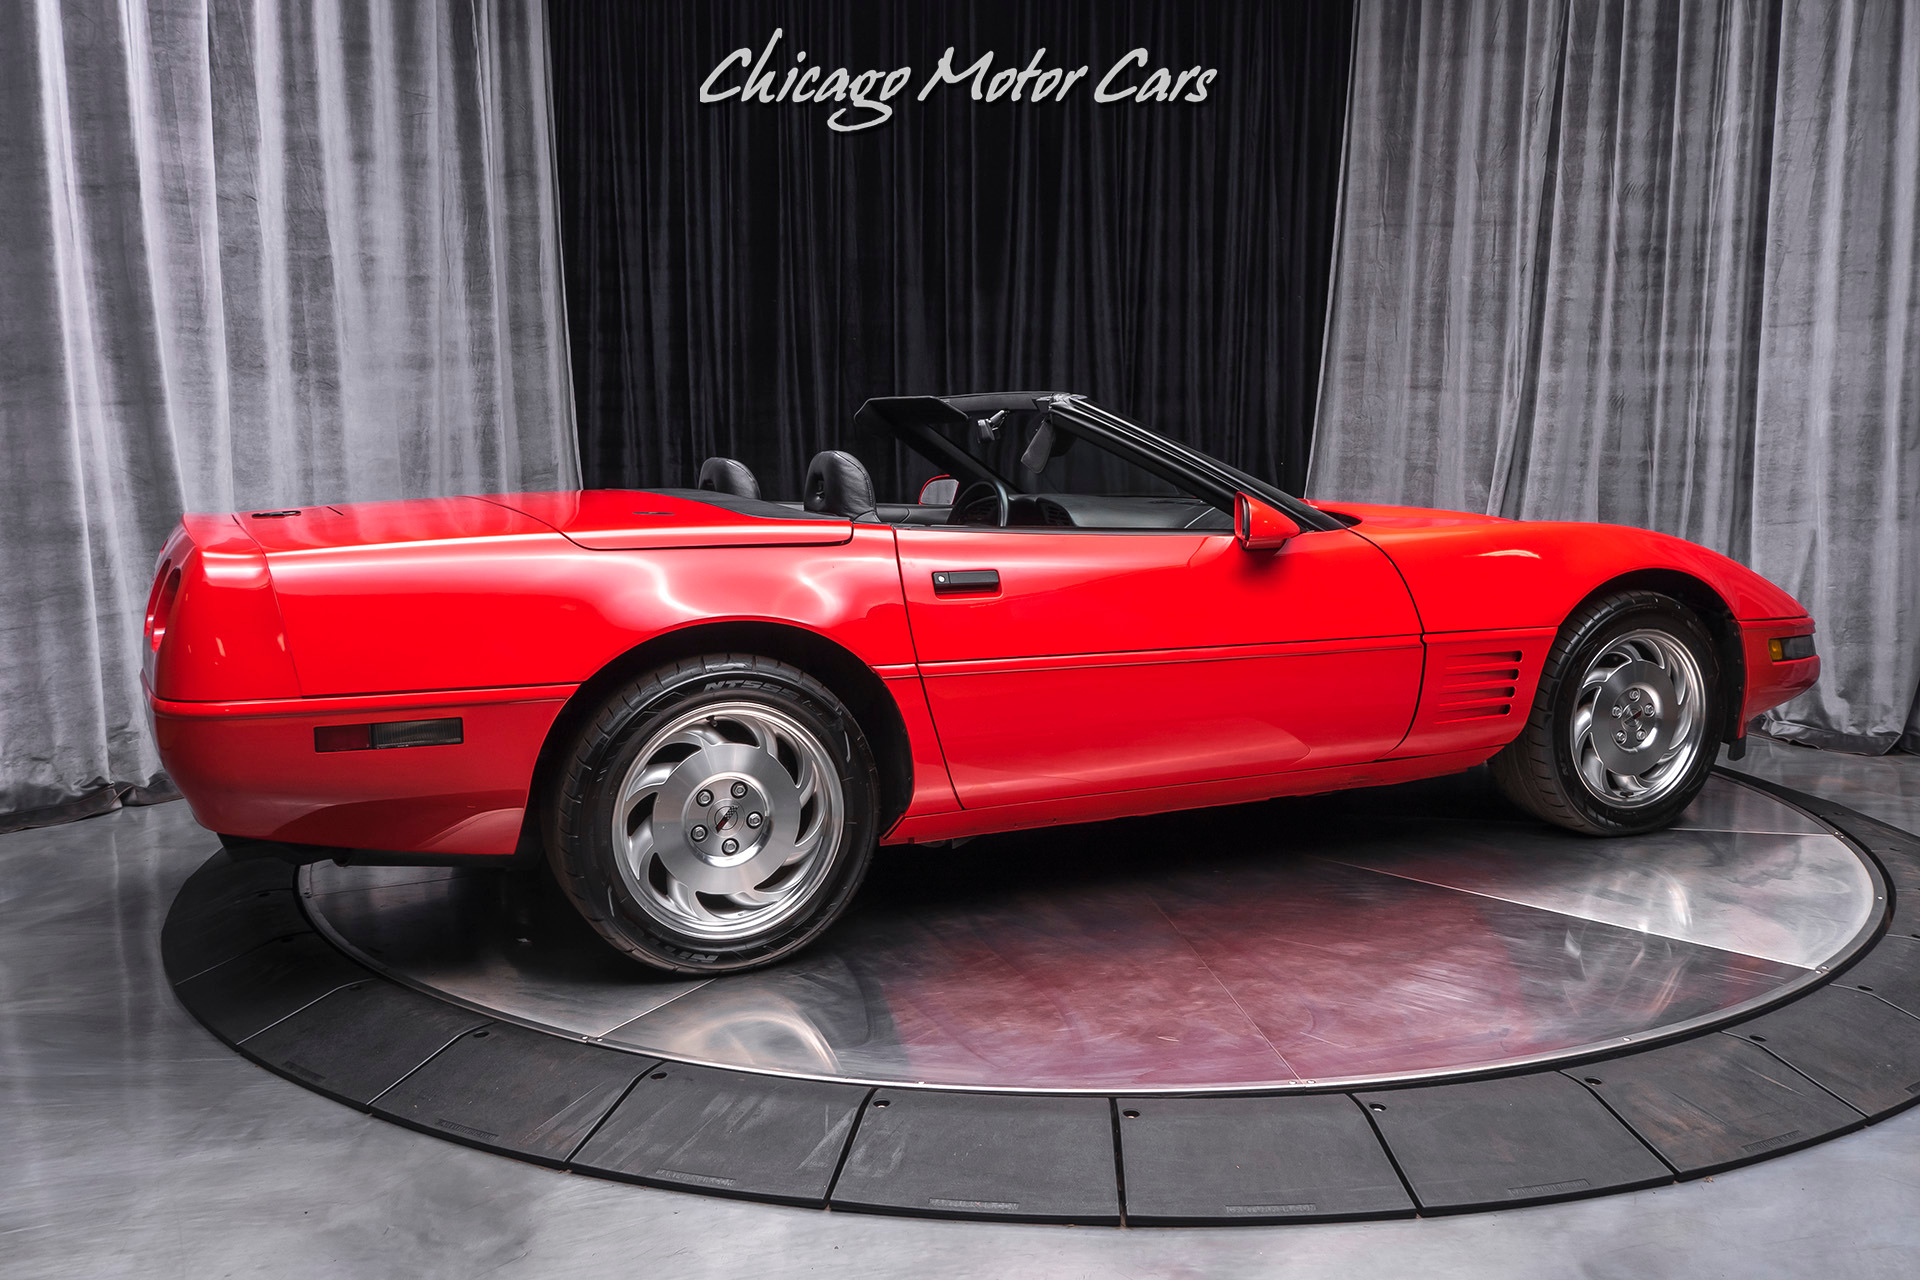 Used-1994-Chevrolet-Corvette-LT1-Convertible-DELCOBOSE-AUDIO-SYSTEM-ONLY-13K-MILES